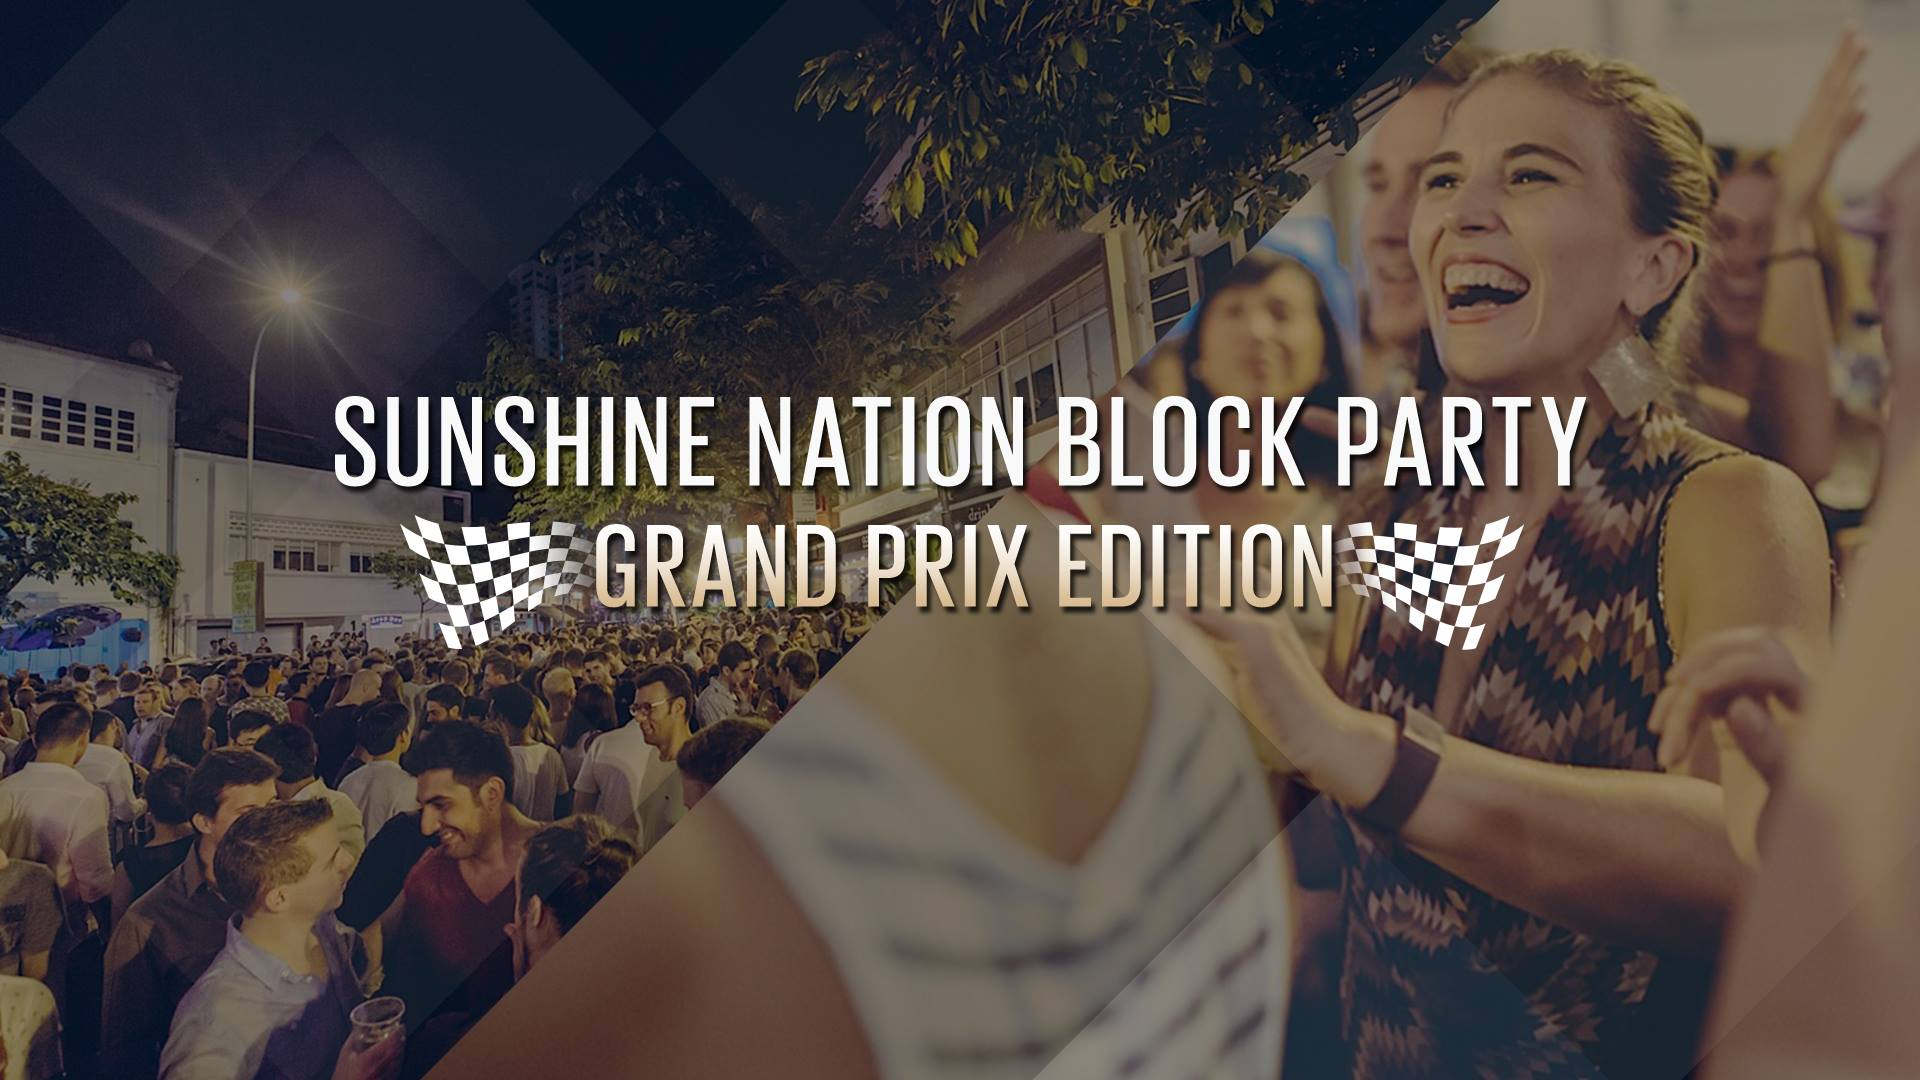 F1-party-venuerific-blog-sunshine-nation-vlock-party